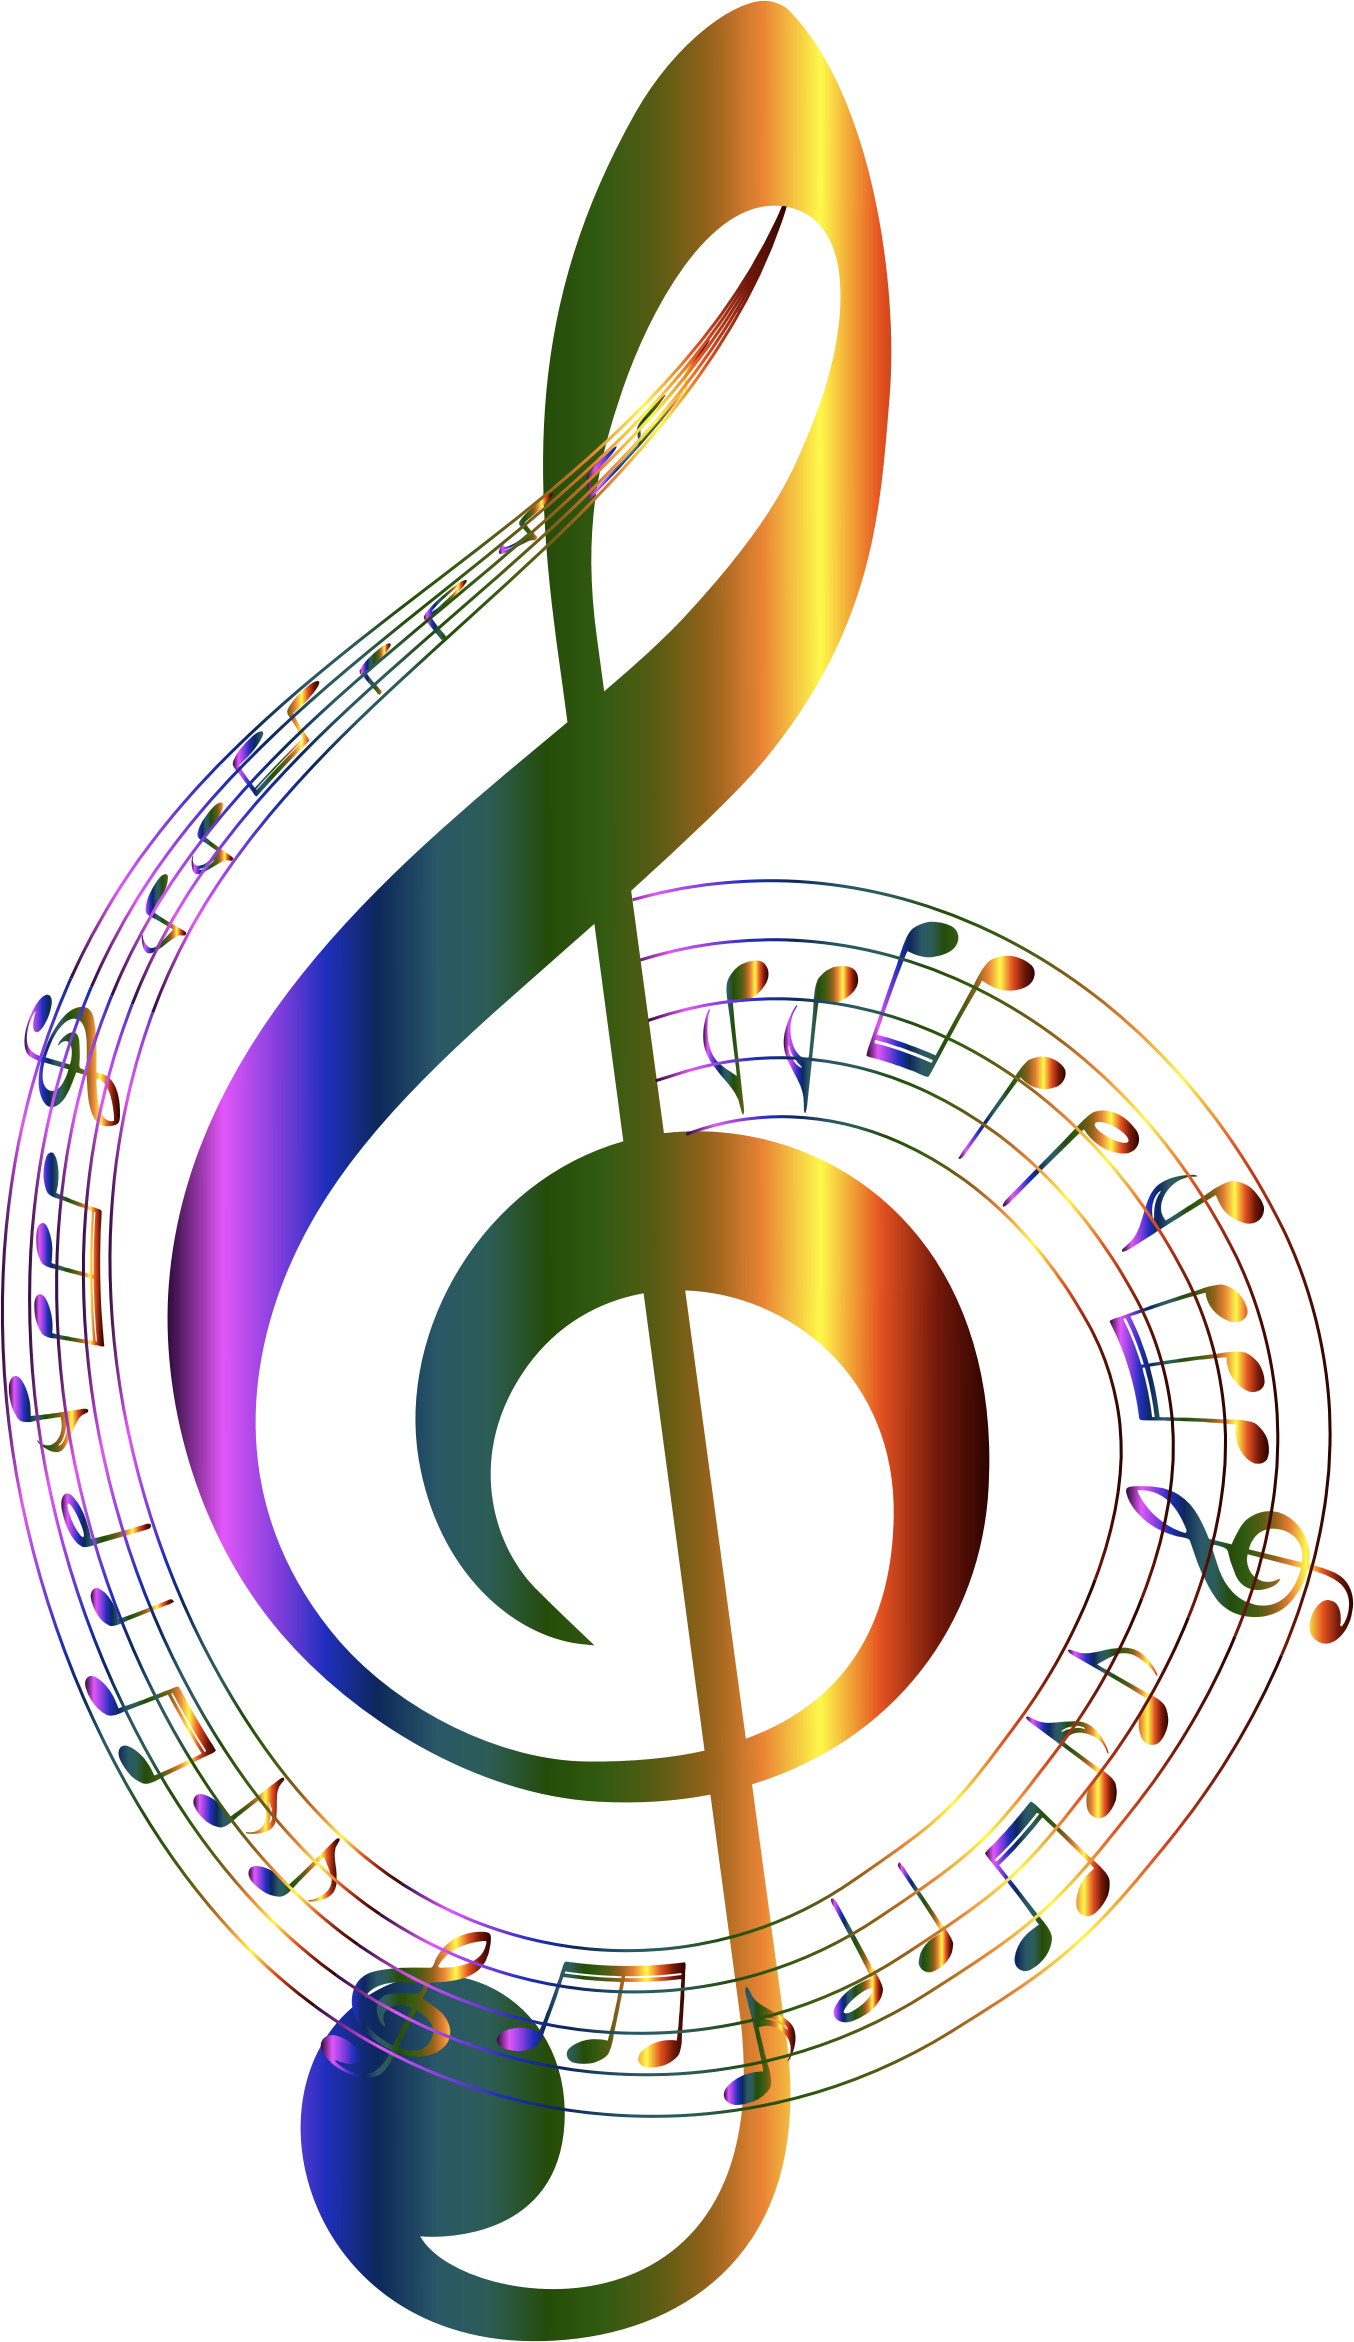 Piano clipart choir note. Chromatic musical notes typography